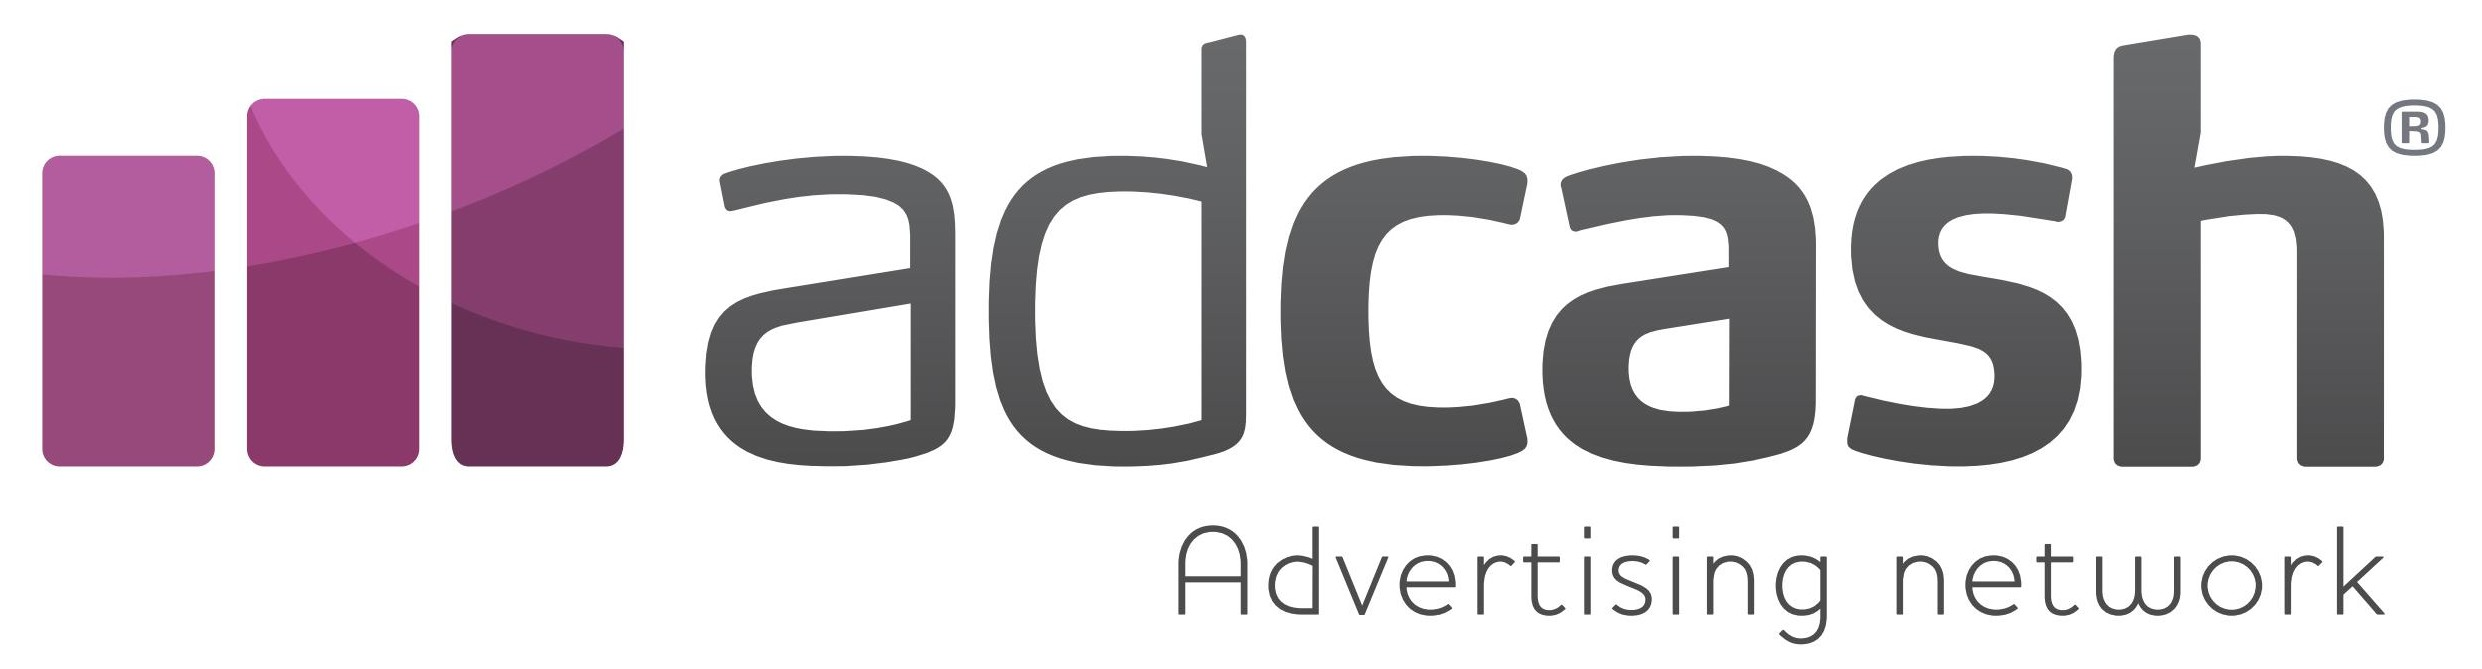 Top 10 CPM Ad Networks 2017 - Online Ad Network Reviews